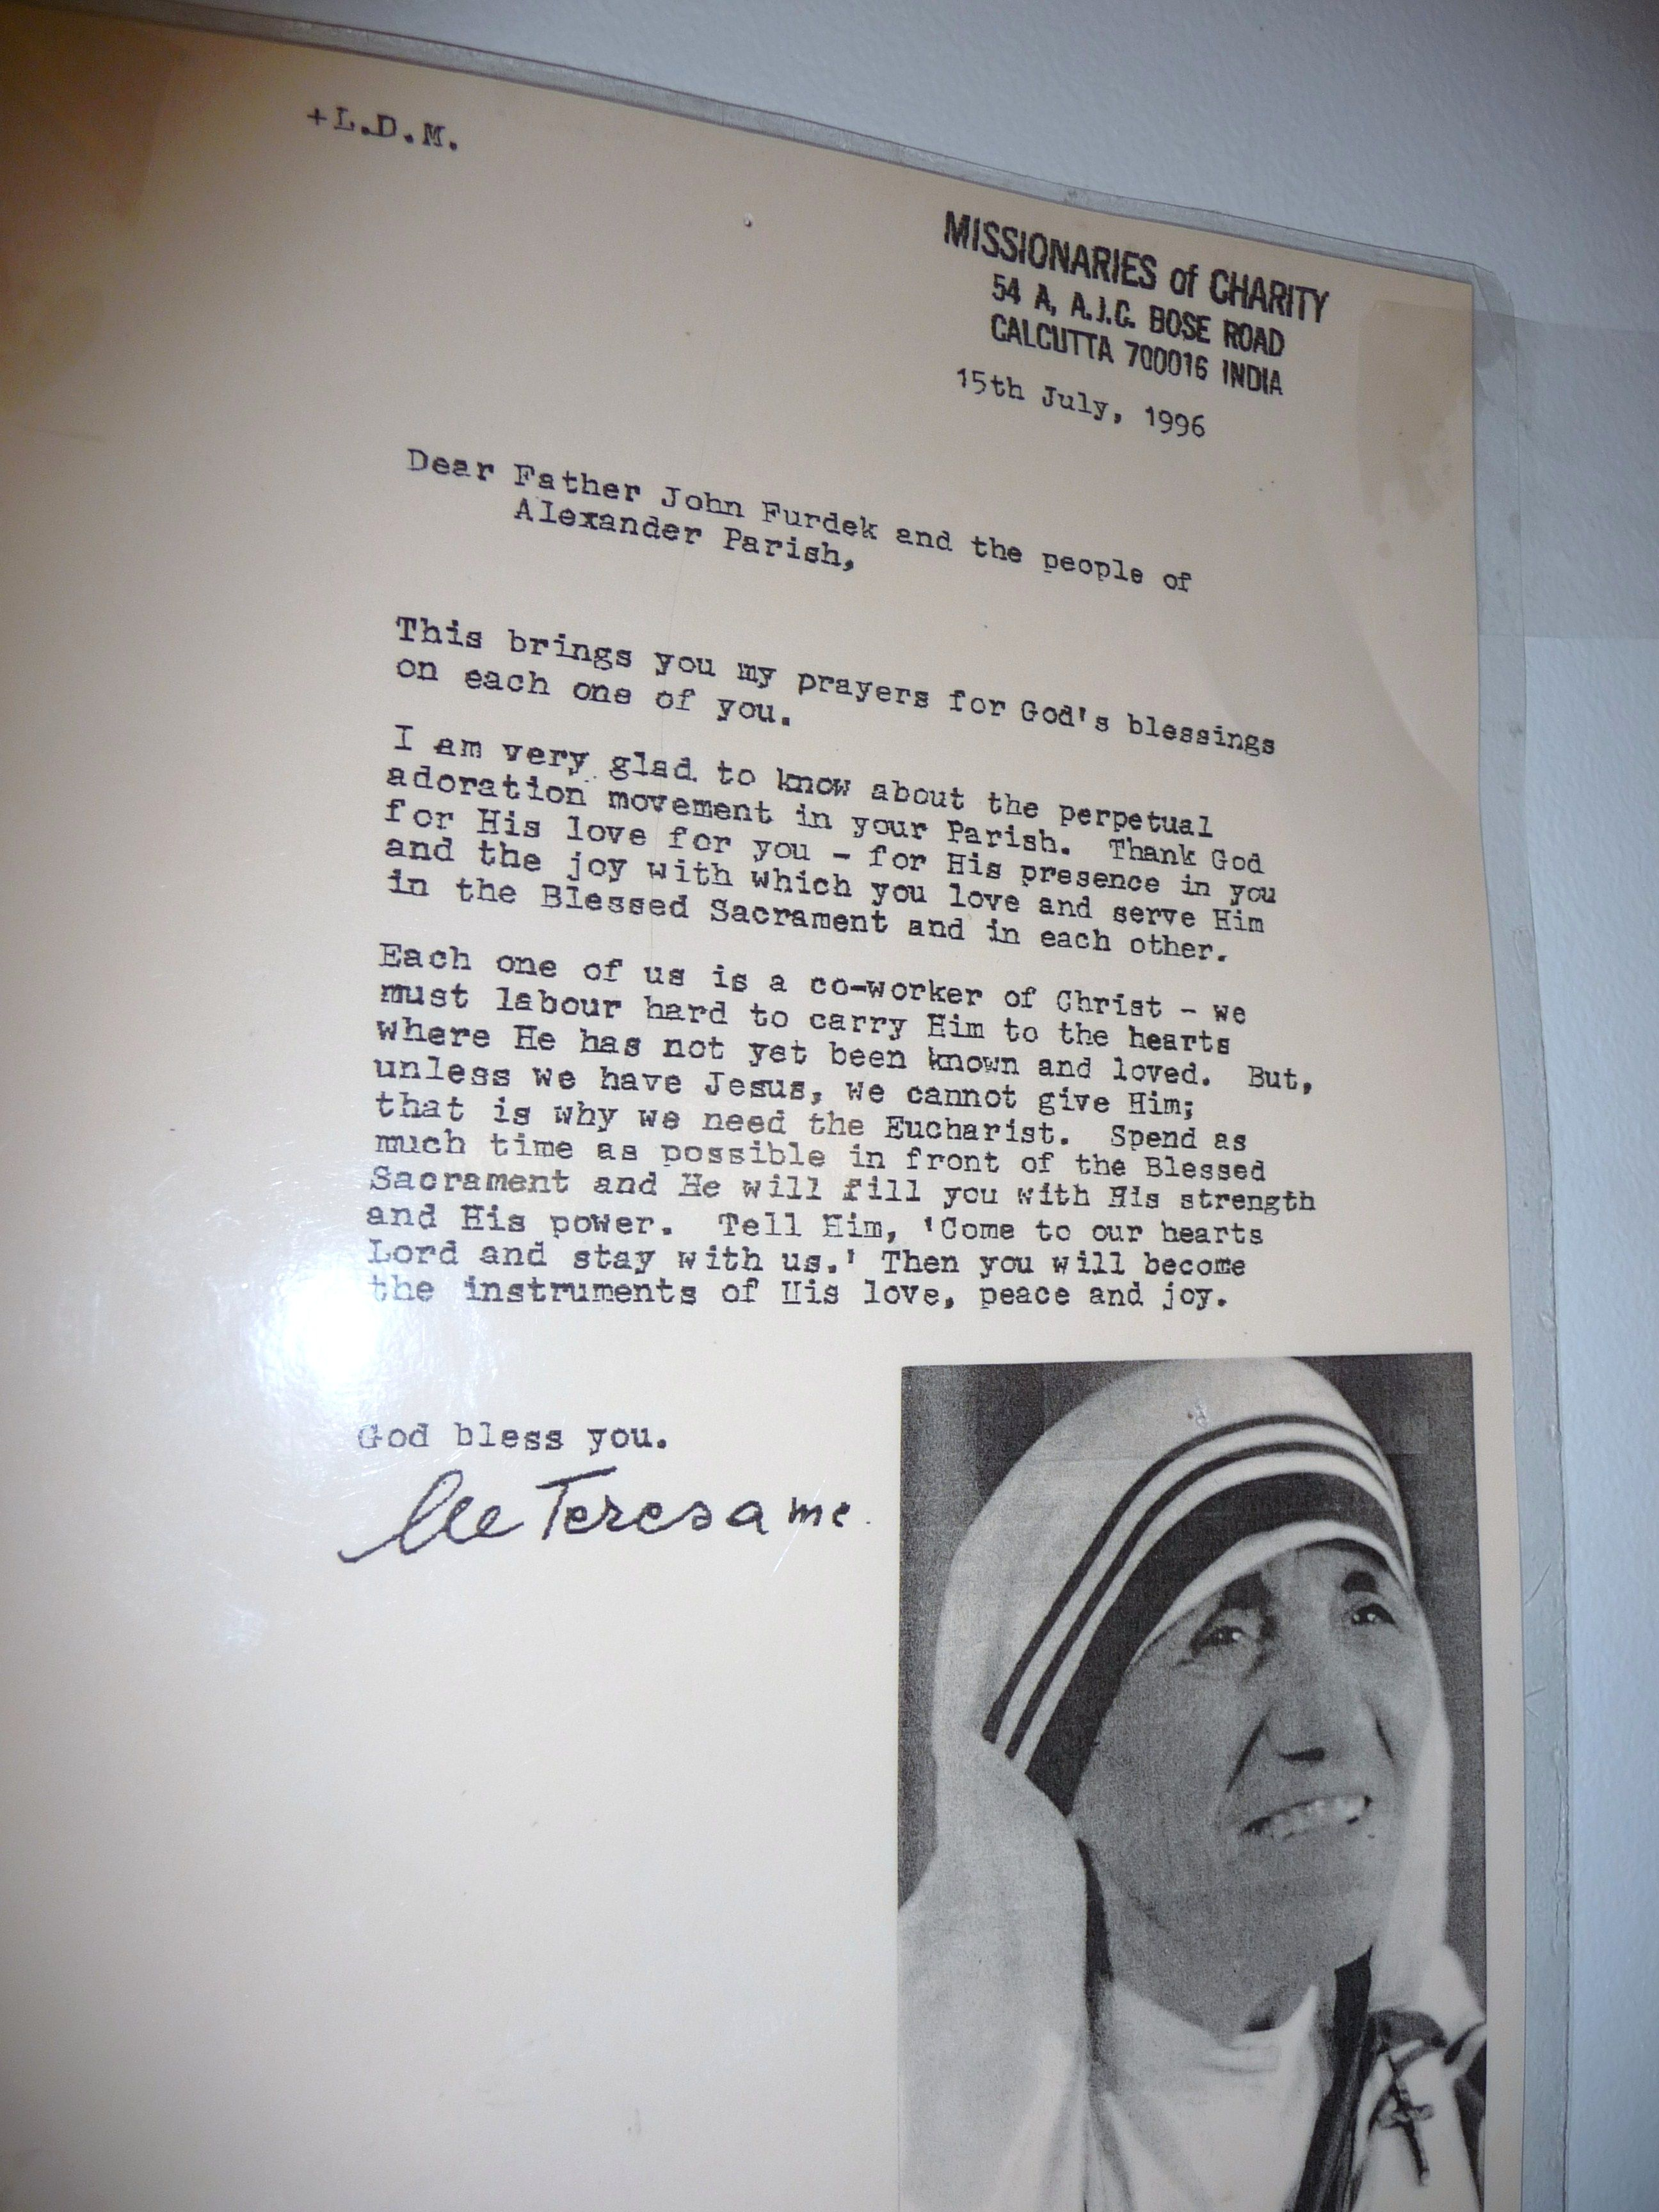 Mother Teresa Quotes On The Eucharist: Mother Teresa On Eucharistic Adoration (Photo By Jeanette